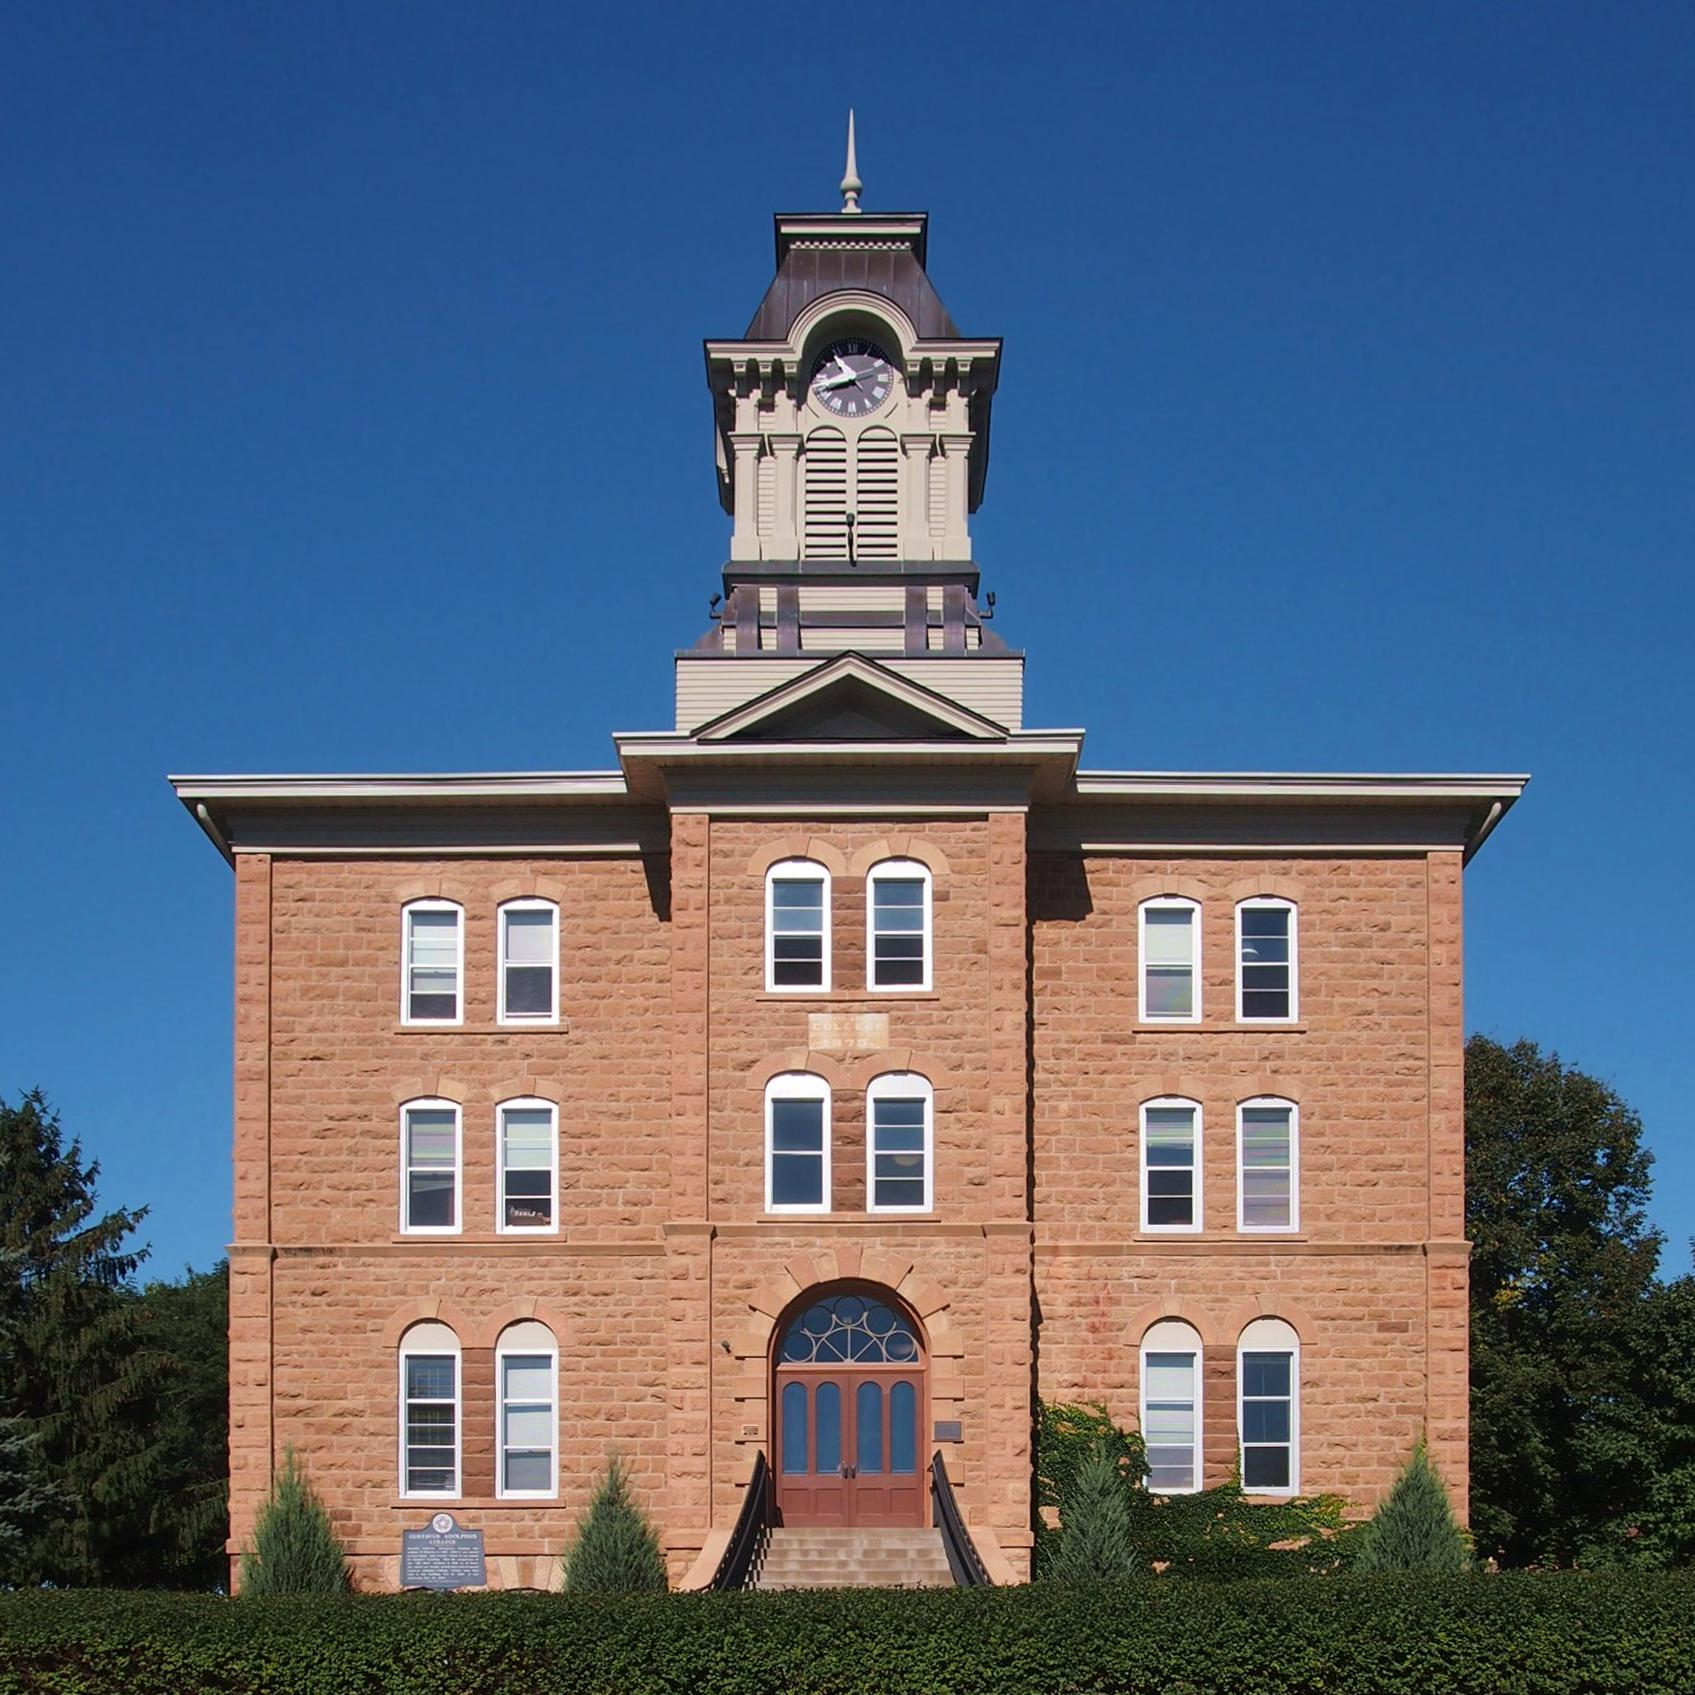 A photograph of Old Main at Gustavus Adolphus College.